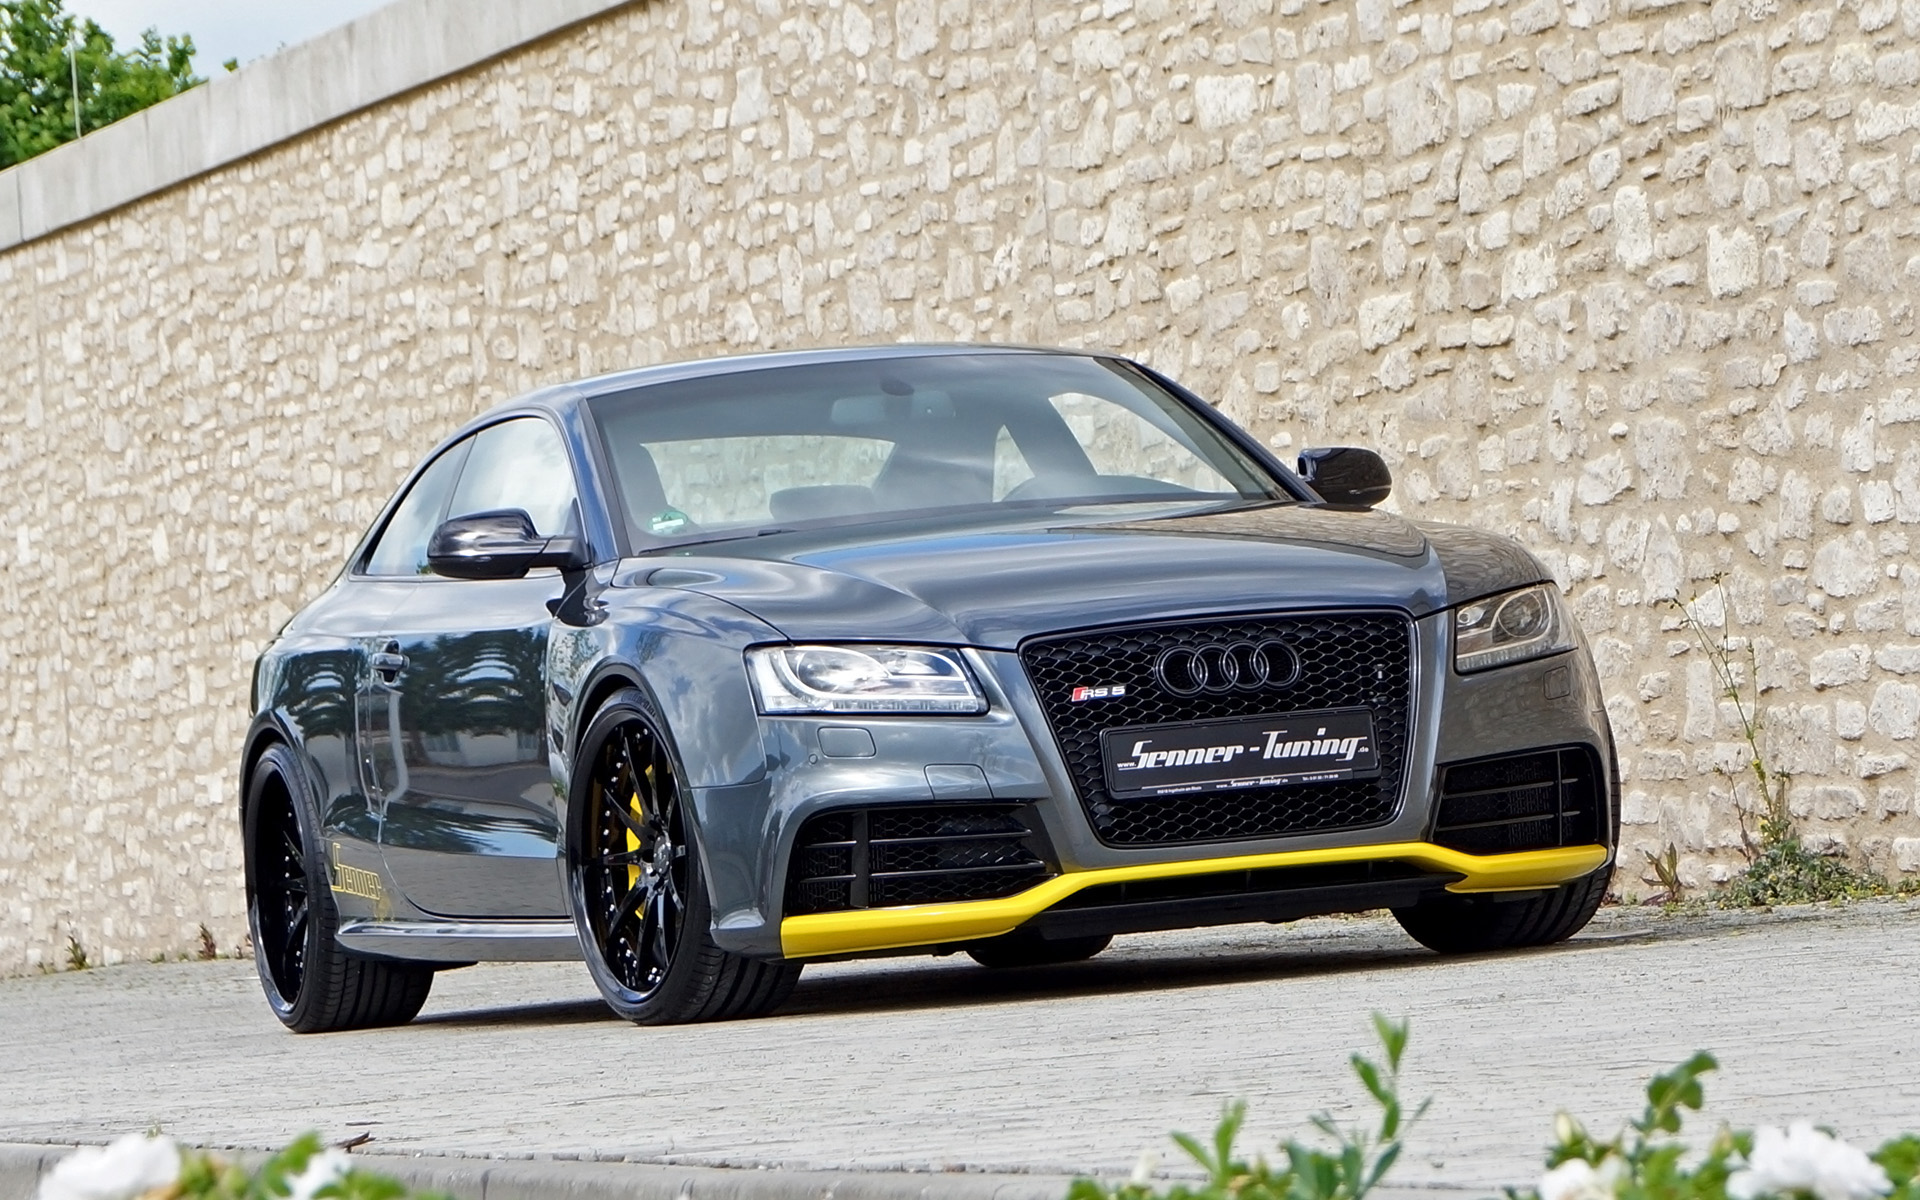 2014 senner tuning audi rs5 coupe wallpaper hd car wallpapers id 4602. Black Bedroom Furniture Sets. Home Design Ideas